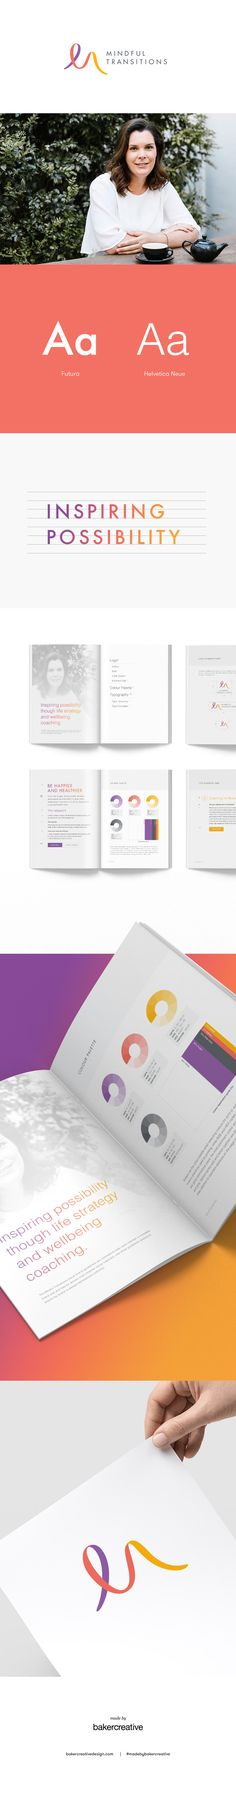 Visual identity design for small business Mindful Transitions, who use positive psychology principles to help people navigate major life transitions like motherhood, career changes and small business management. We used bold, warm and vibrant colours, paired with lots of crisp white and cool grey to maintain a sleek and modern look for the logo and supporting brand collateral. #branddesign #branding #visualidentity #logodesign